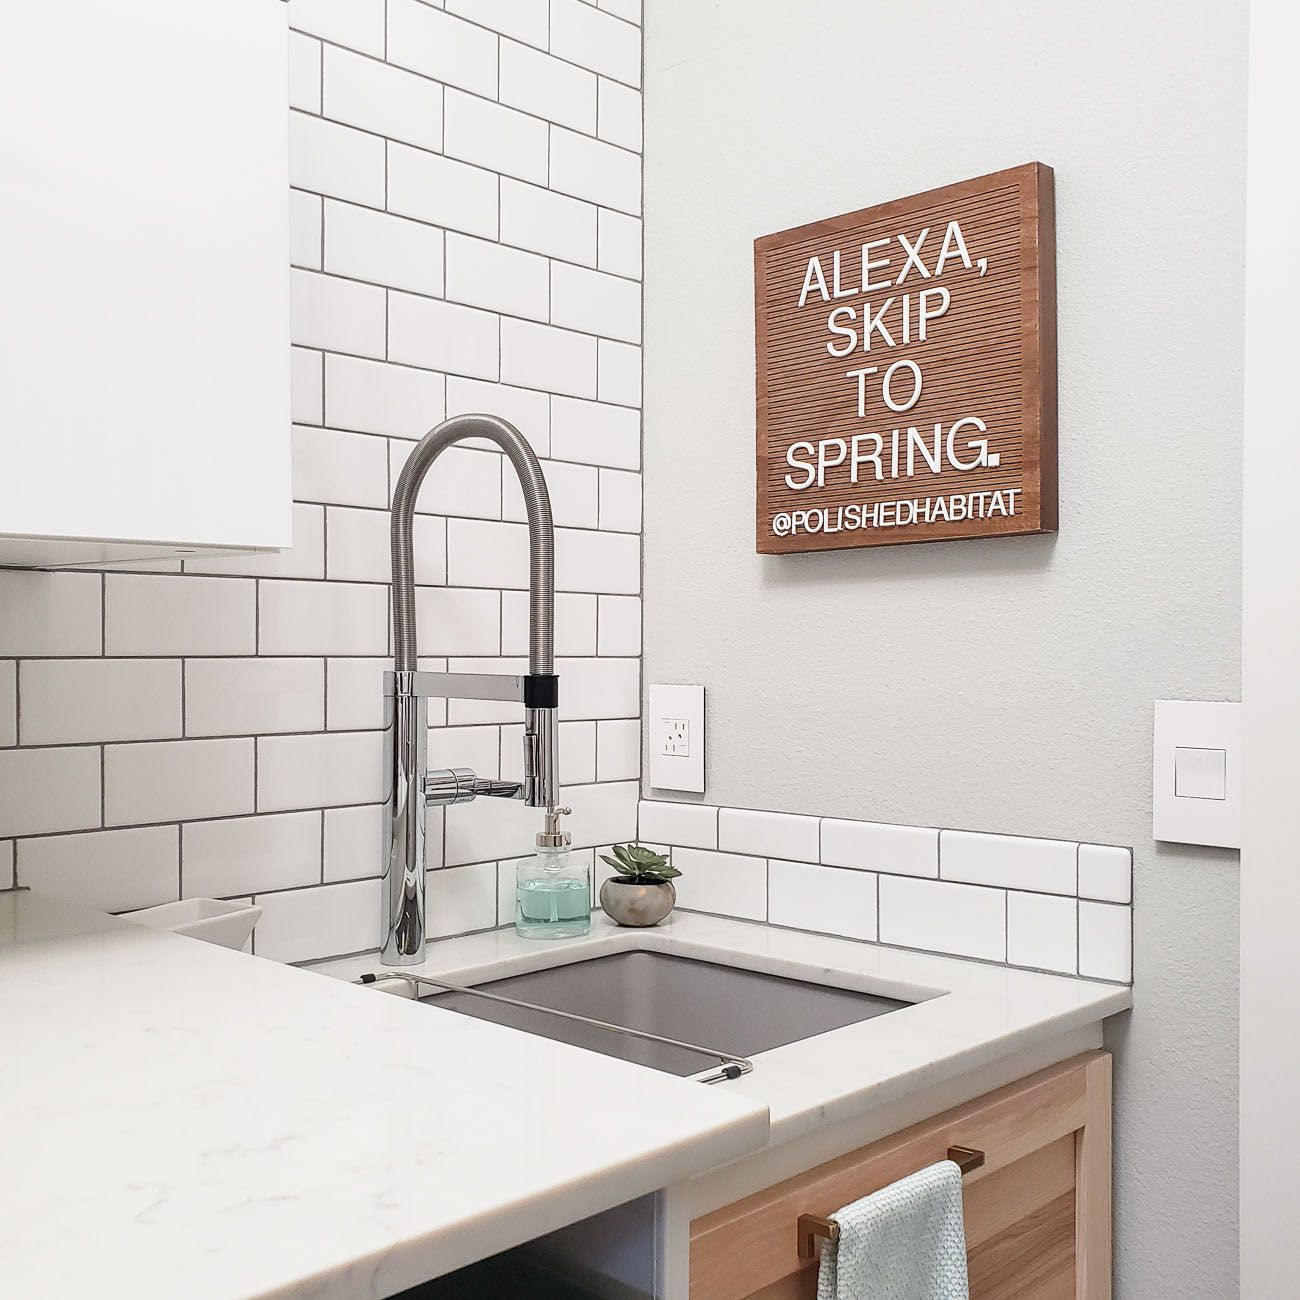 Collection Of Letter Board Ideas With Quotes For The New Year In